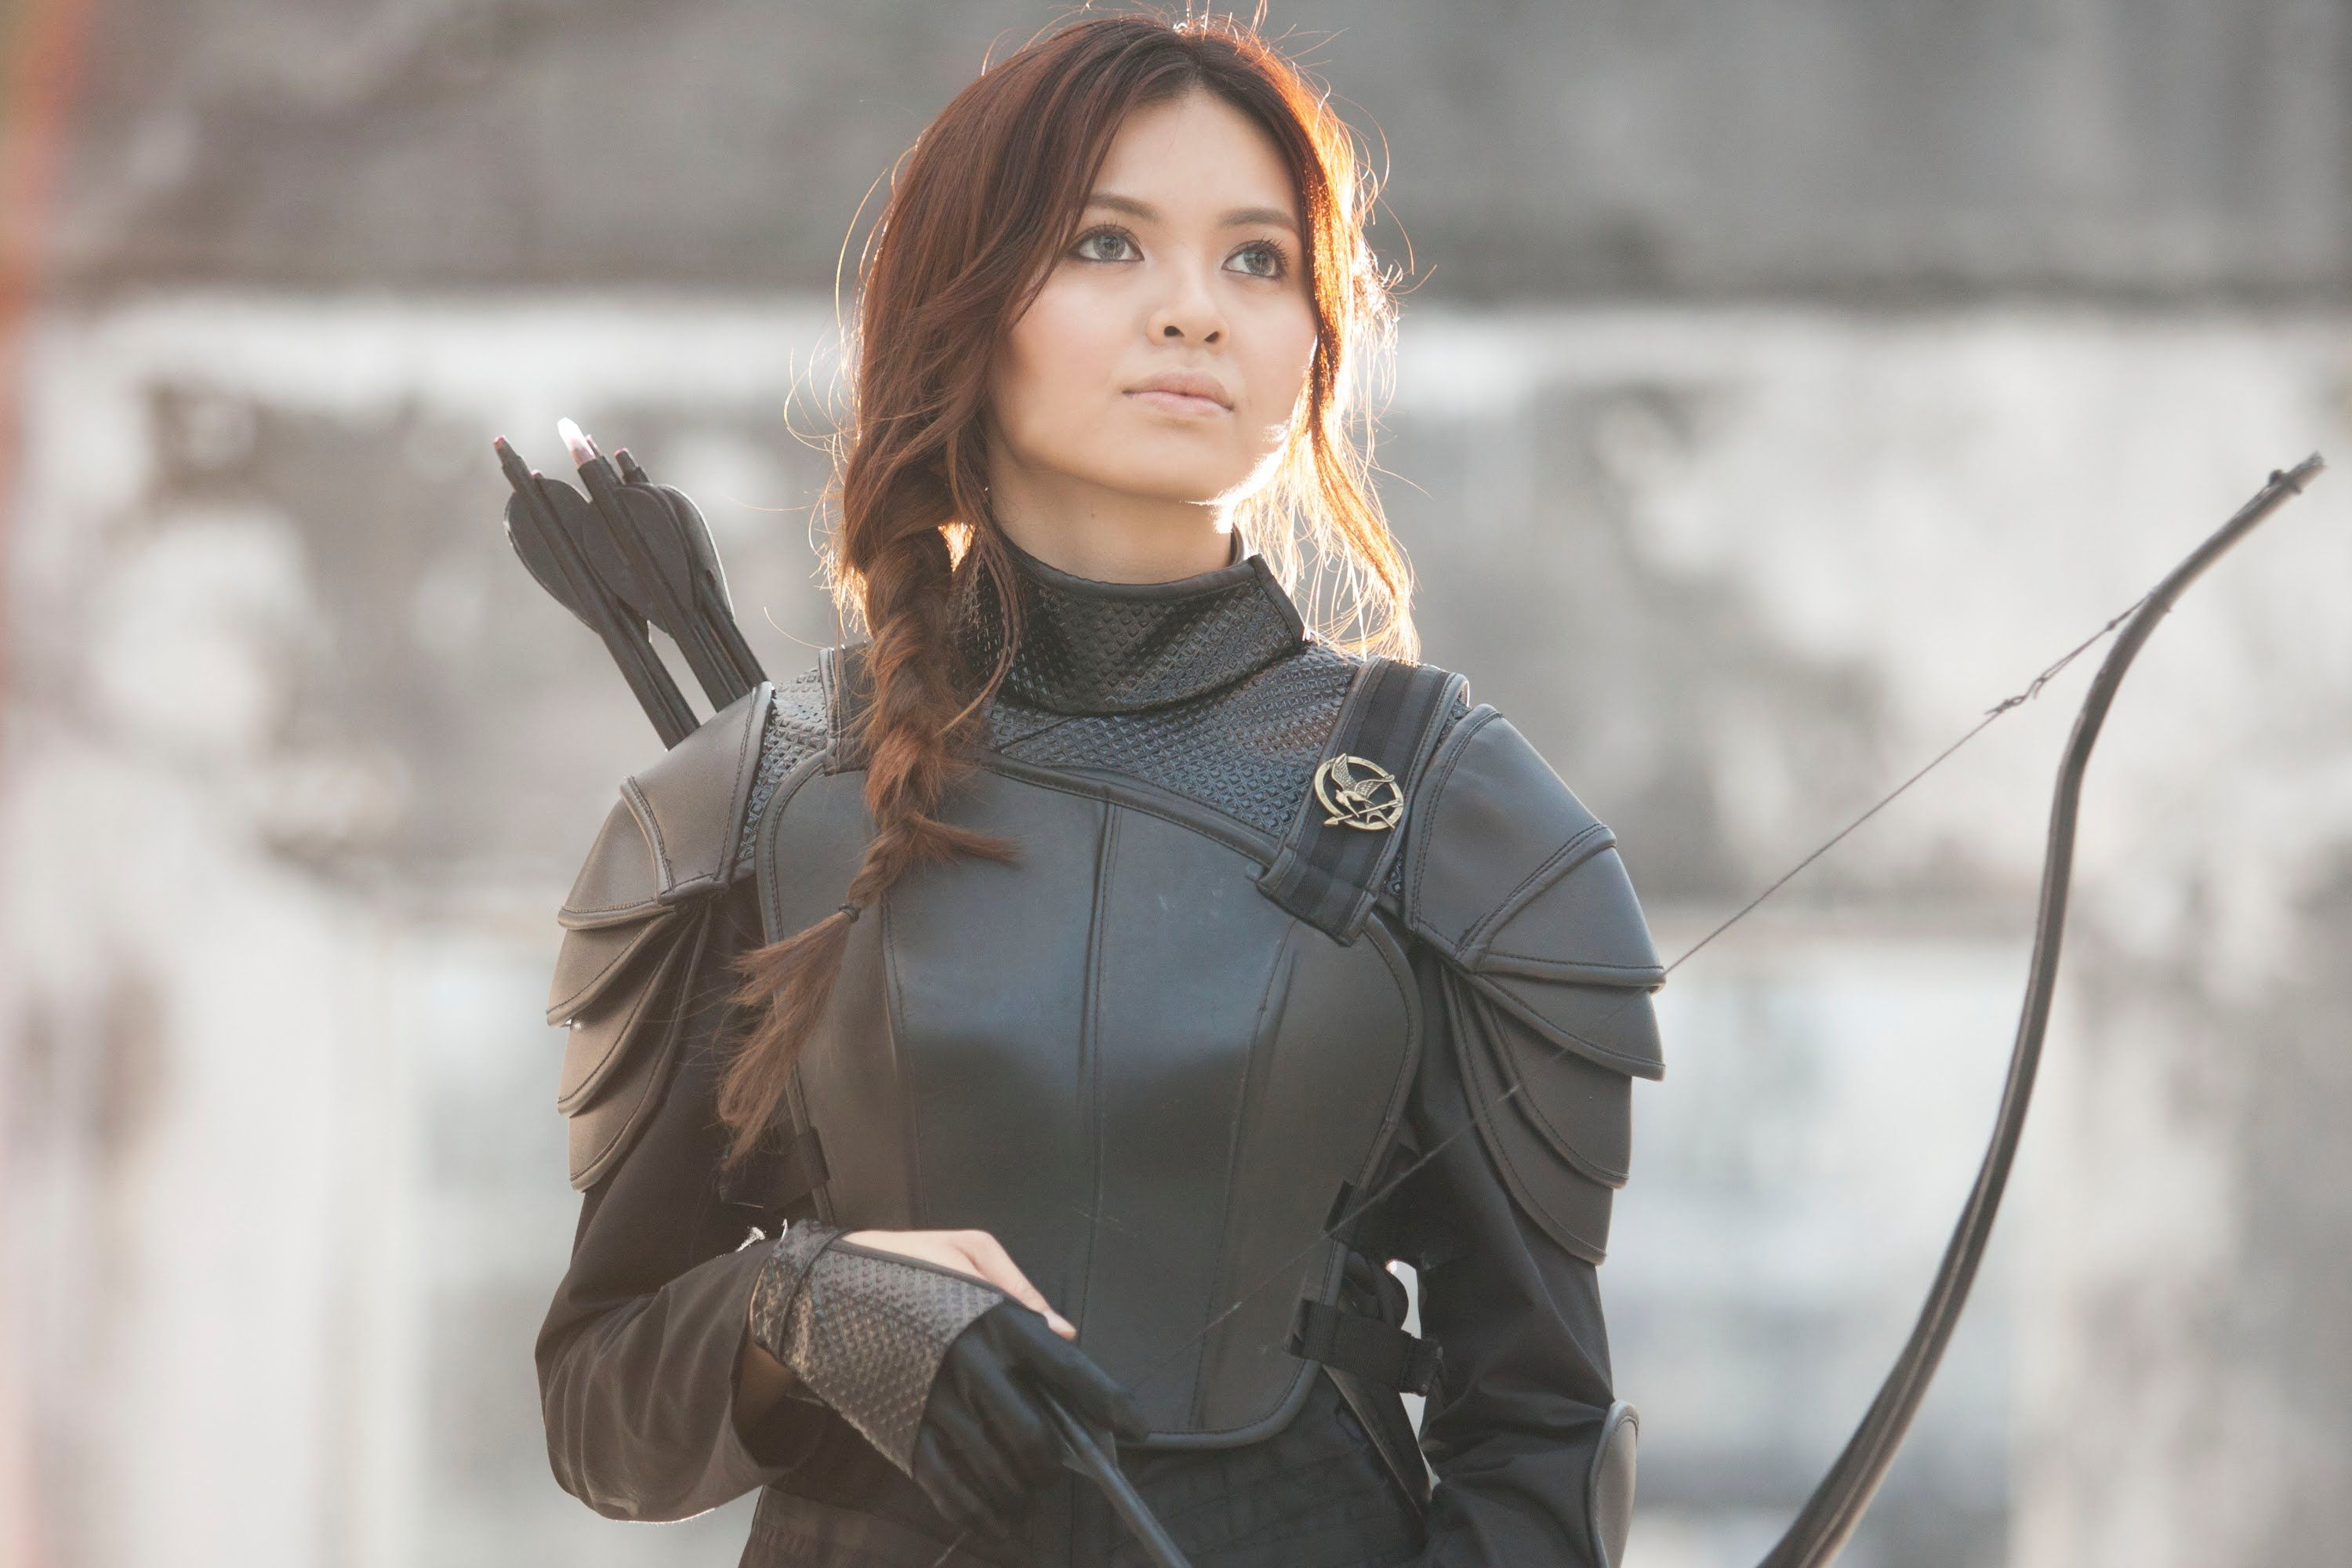 katniss everden is a girl ith Interview with katniss everdeen im going to ask mseverdeen 5 questions interview with katniss everdeen question 1 how did you feel when your sister,prim,was selected for tribute i was very sad and was just so worried that she could have died.